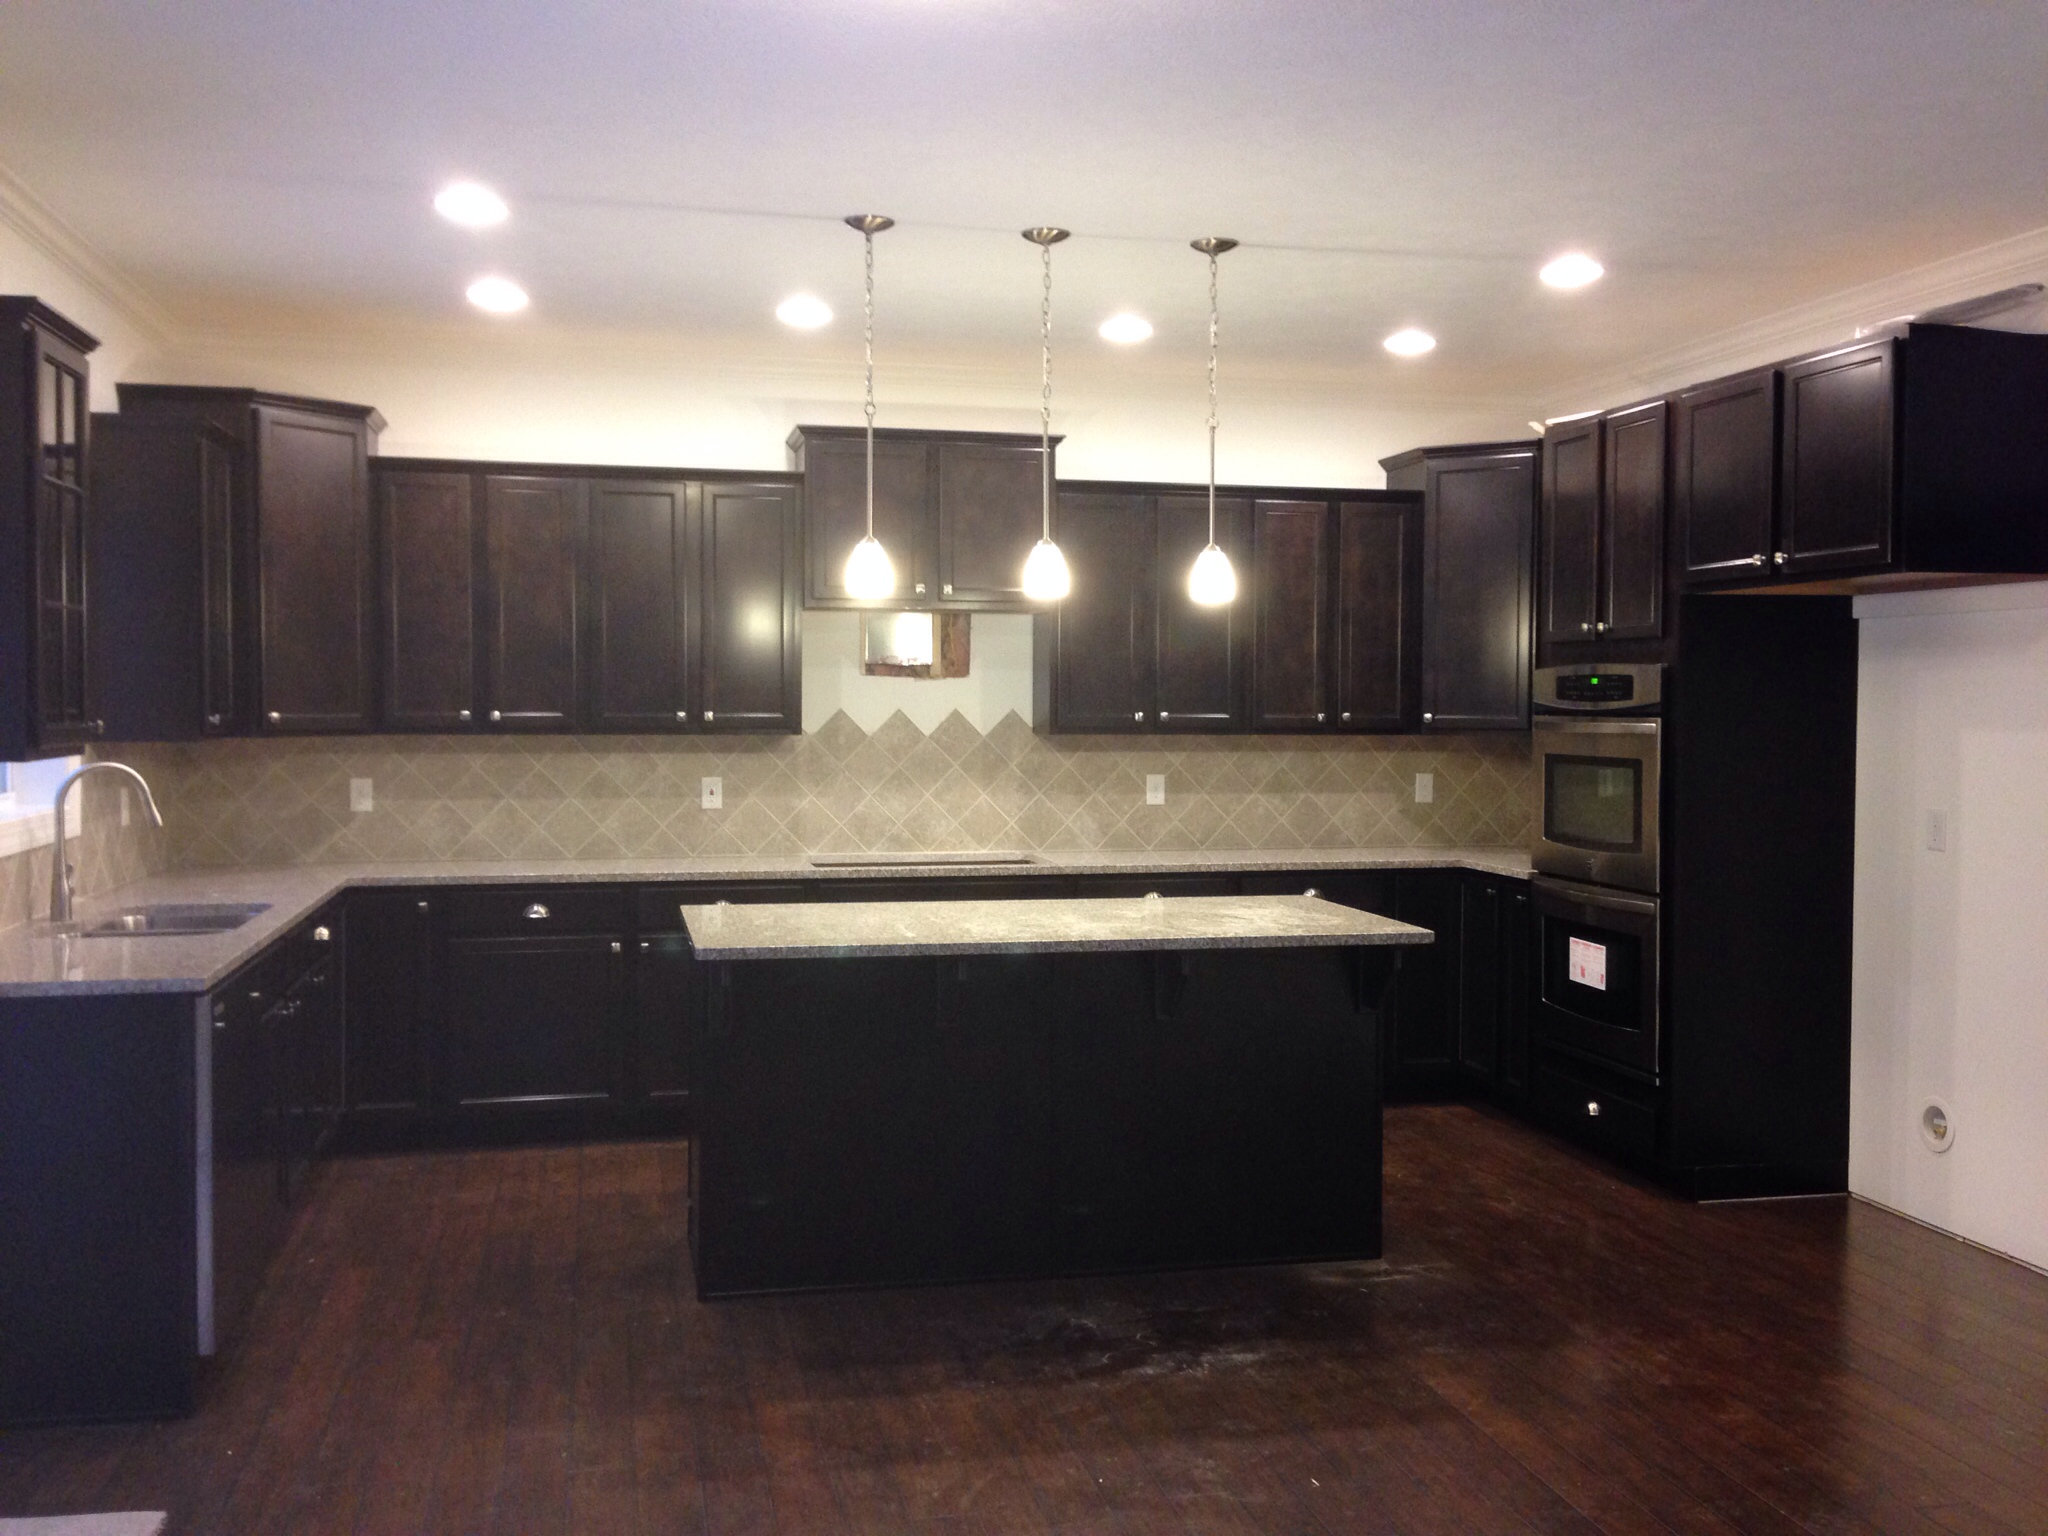 black aristokraft cabinets with beige back splash matched with wooden floor for kitchen design ideas